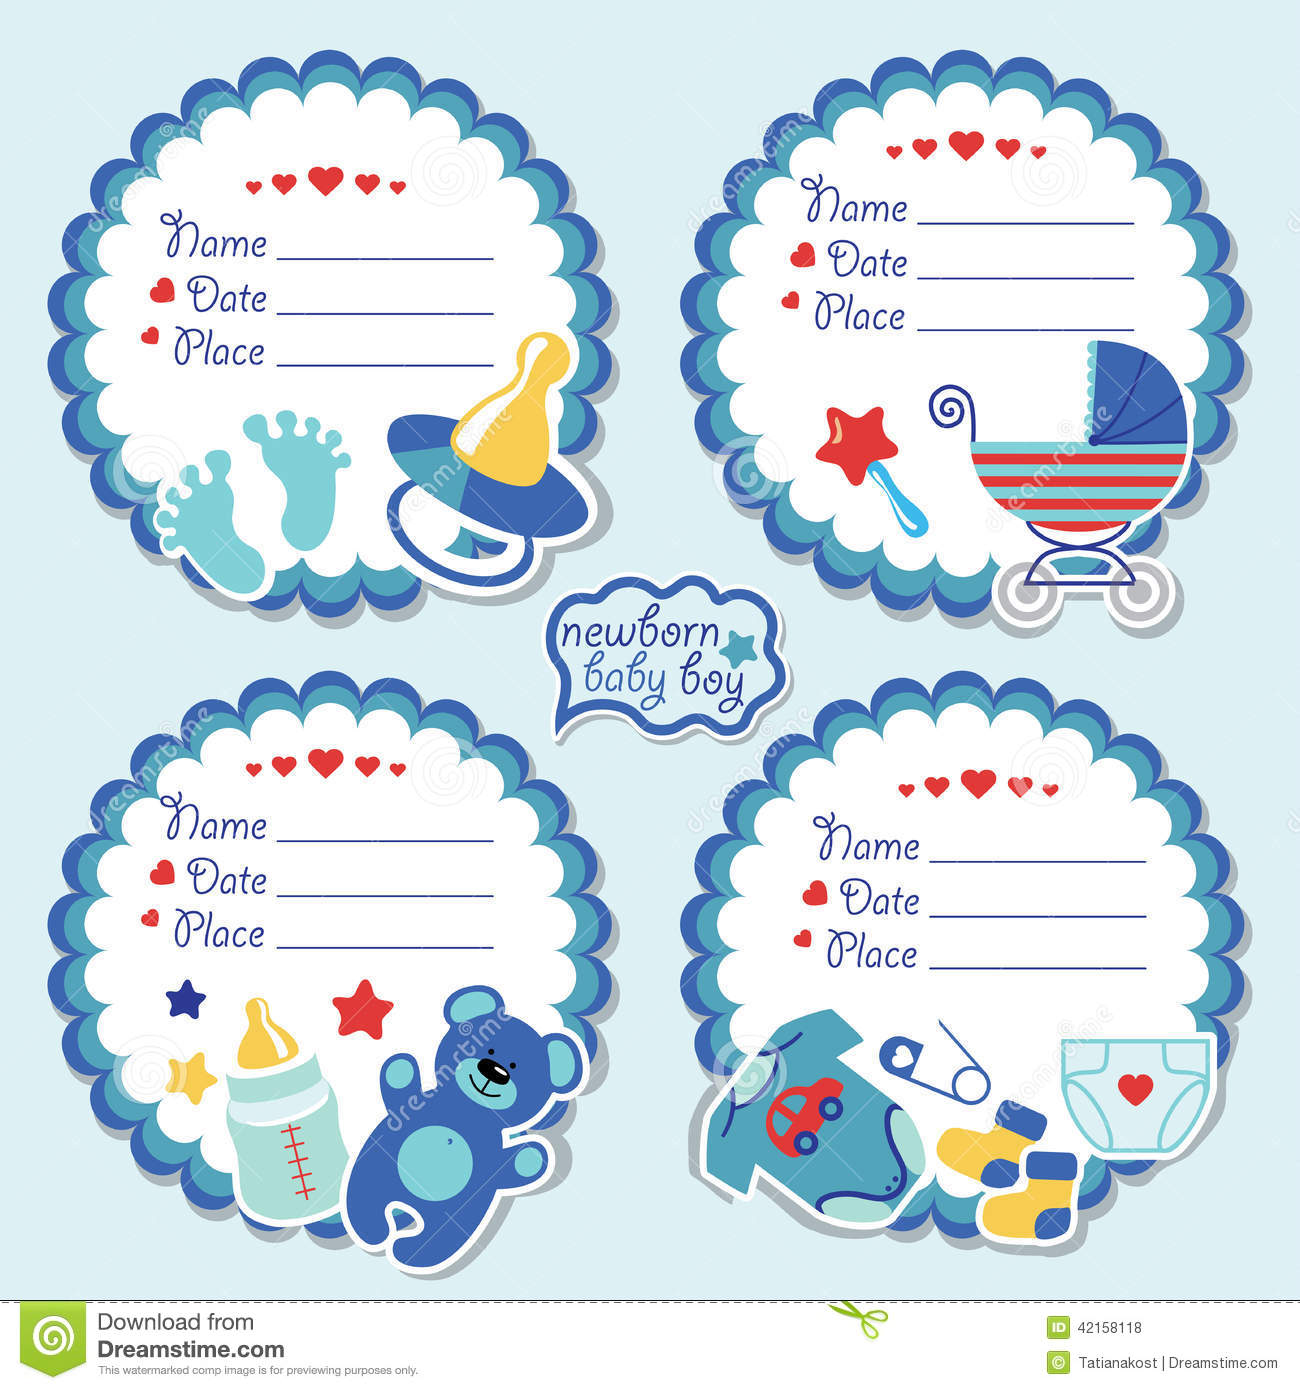 Baby Shower Invitation Card Template was awesome invitations ideas